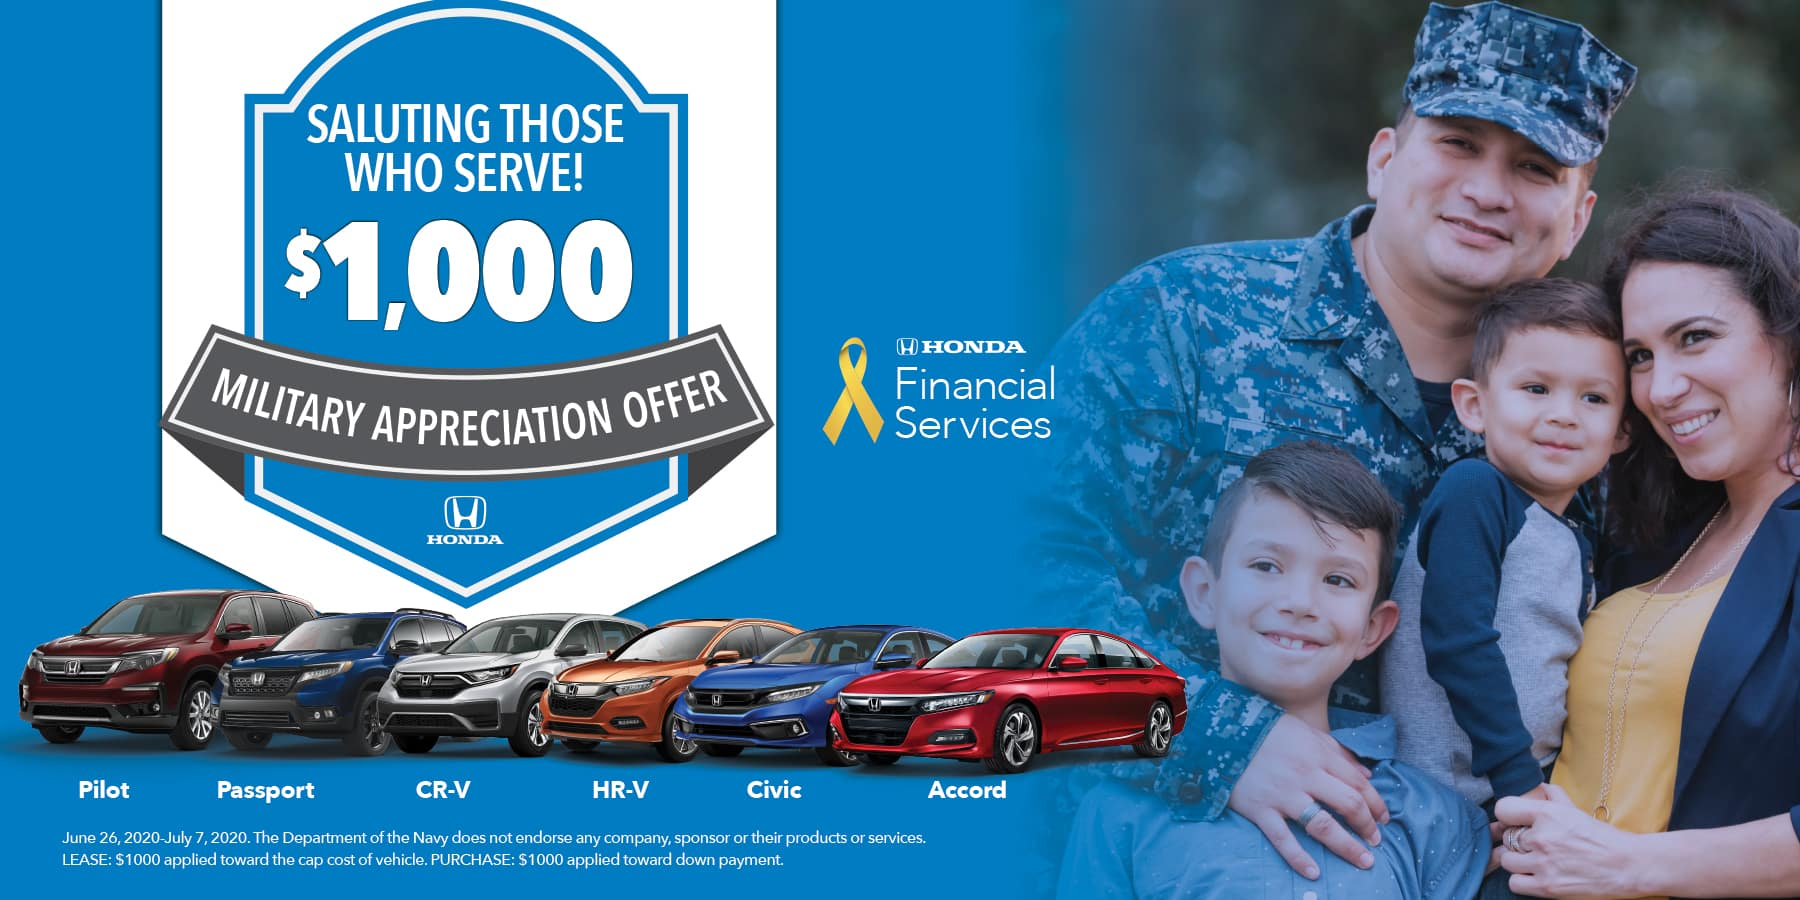 HAMPT-0620-234769--Military-Banners_Website--$1000-Offer-1800x900